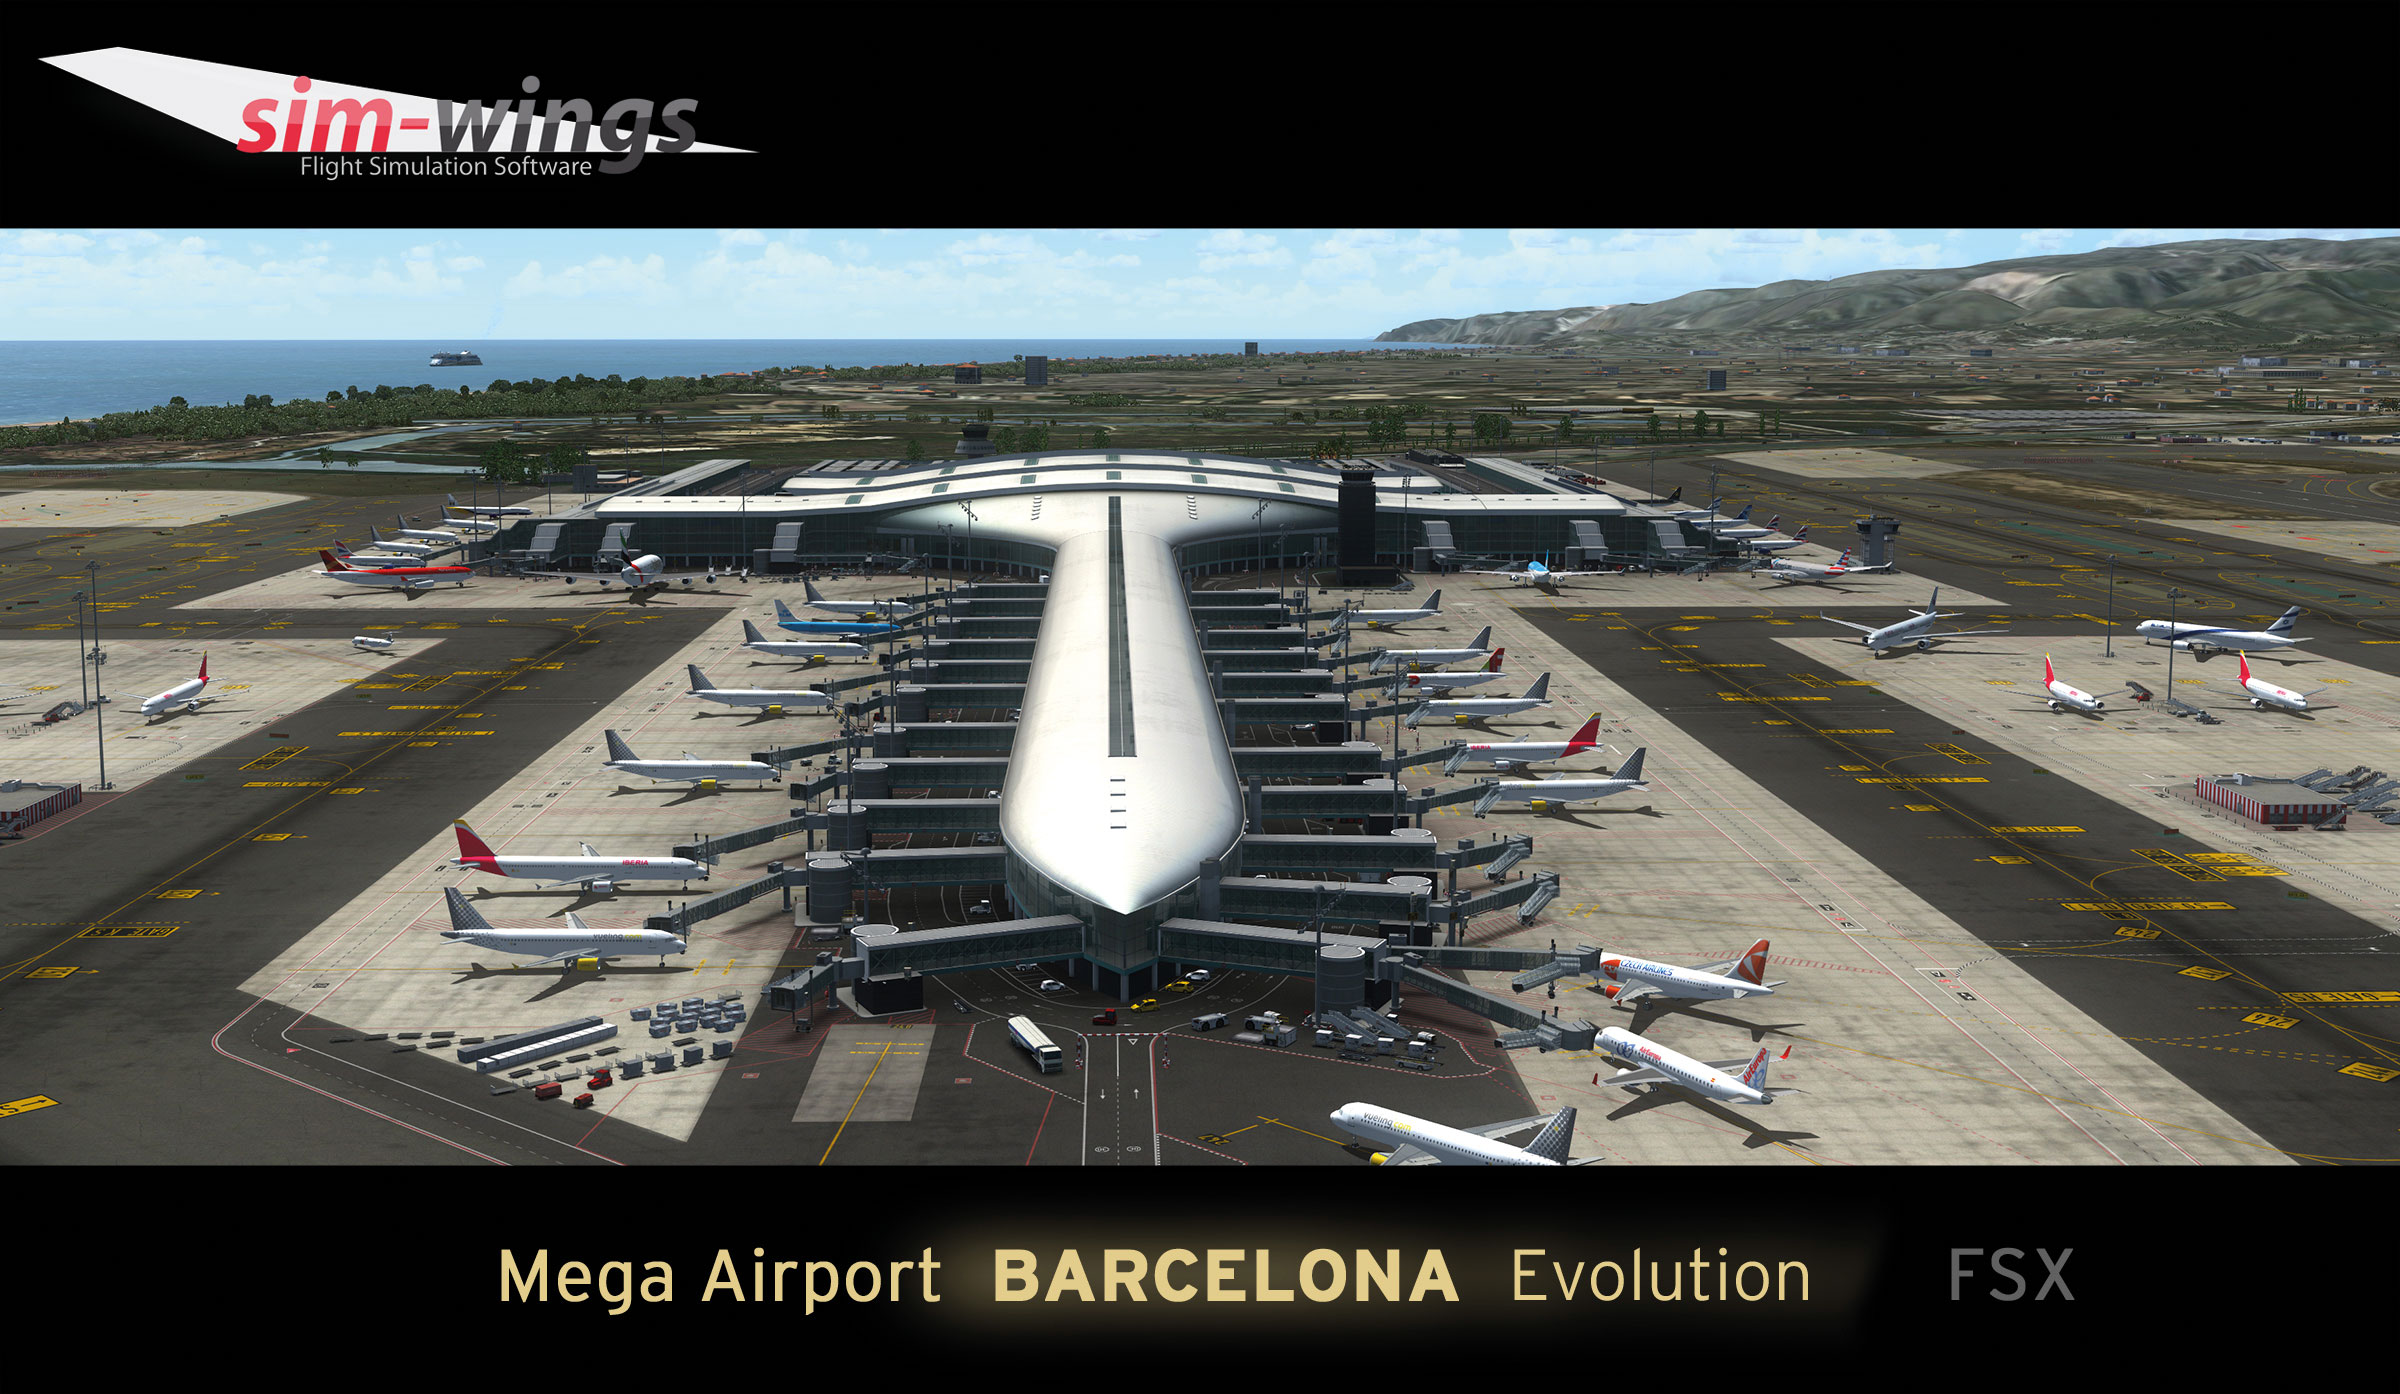 Mega Airport Barcelona Evolution Scenery for FSX